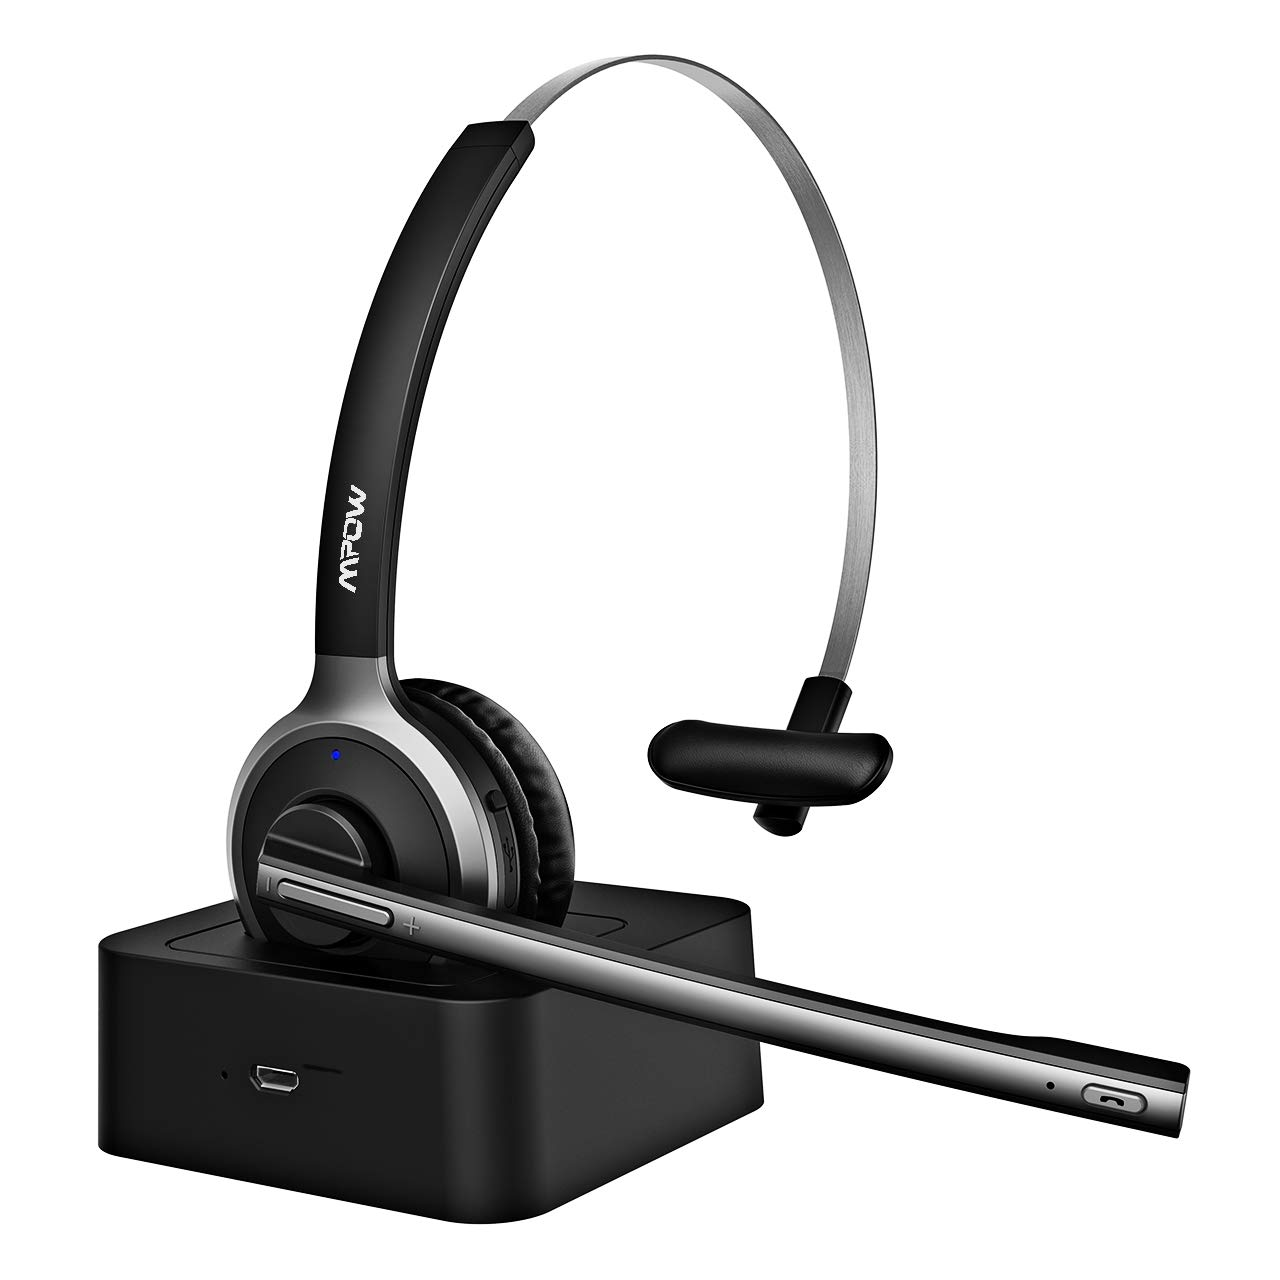 Mpow V4.1 Bluetooth Headset/Truck Driver Headset with Charging Stand Dock, Wireless Over Head Earpiece with Noise Reduction Mic for Phones, Skype, Call Center, Office